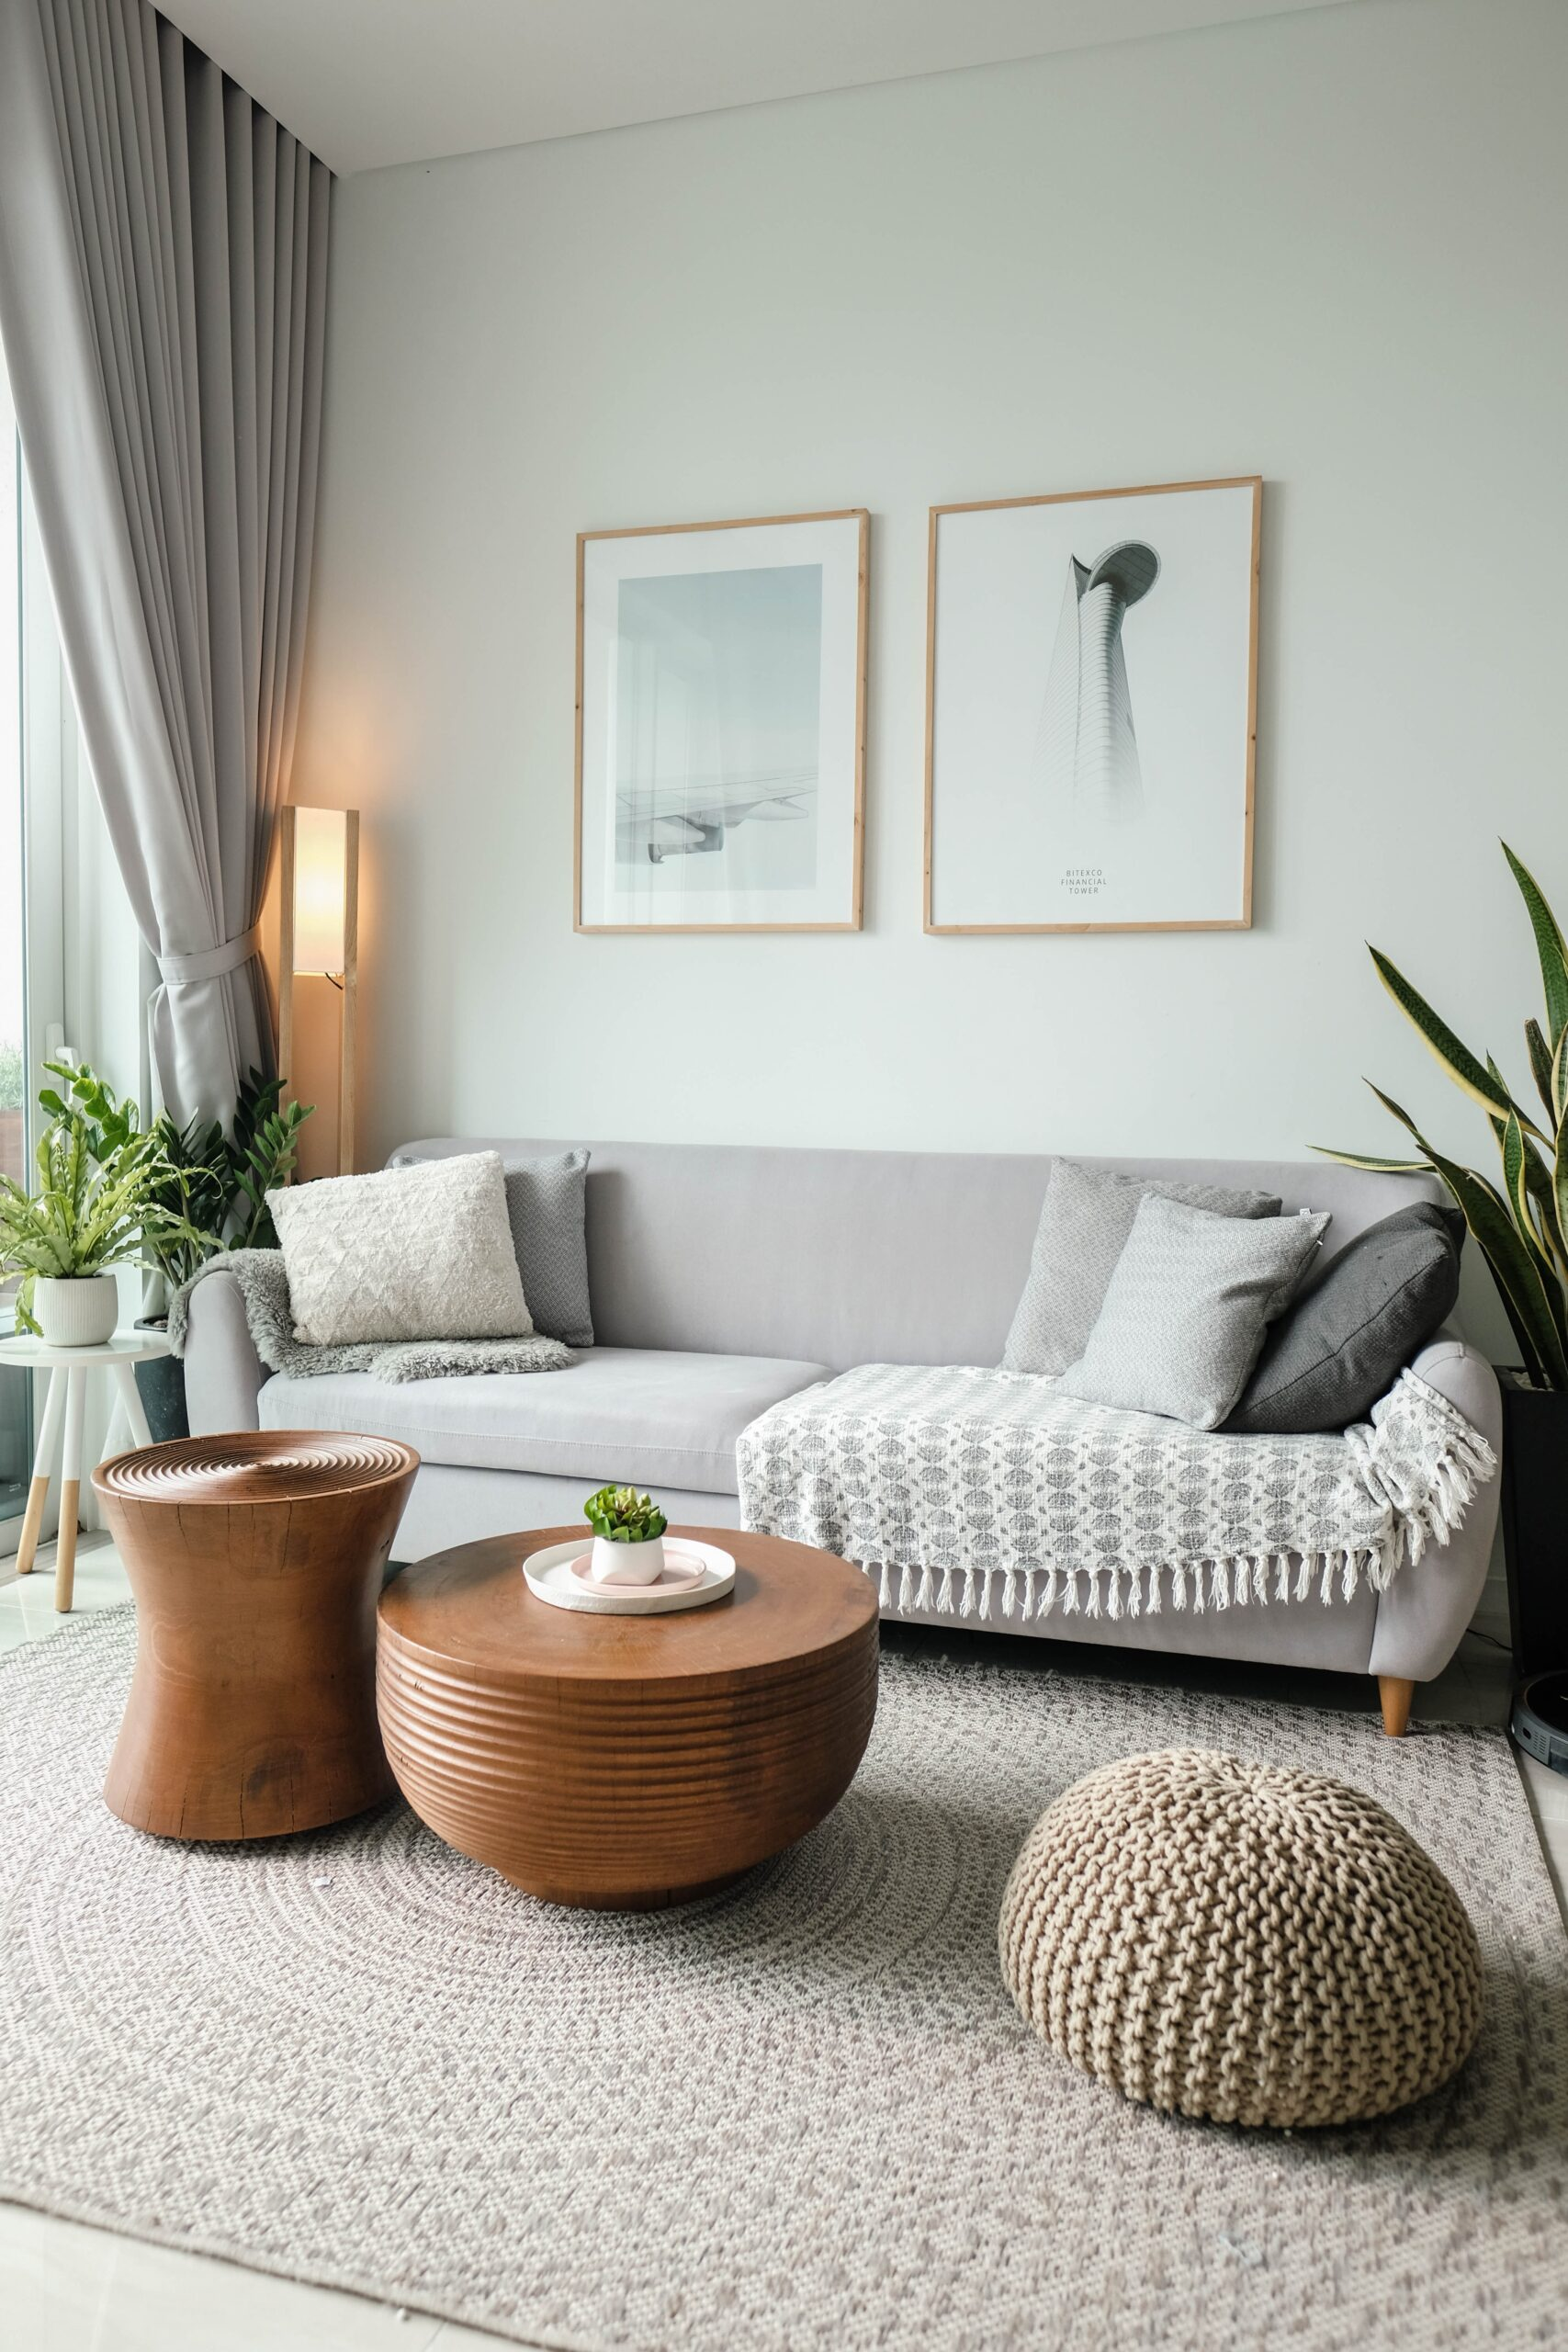 Cozy Up to These Fall Decor Trends